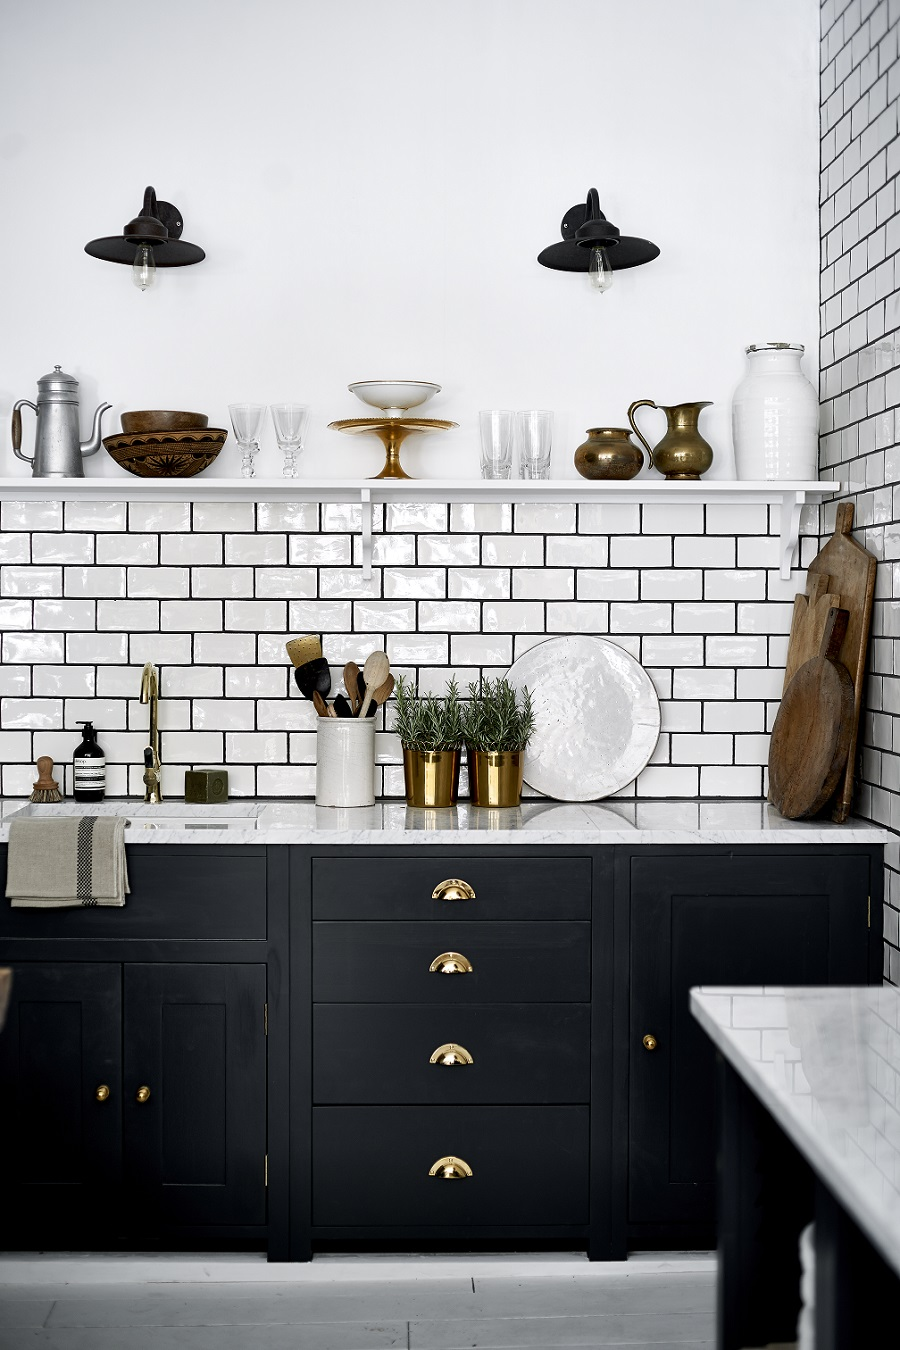 Kitchen Trends That Will Never Go Out of Style | Dear Designer